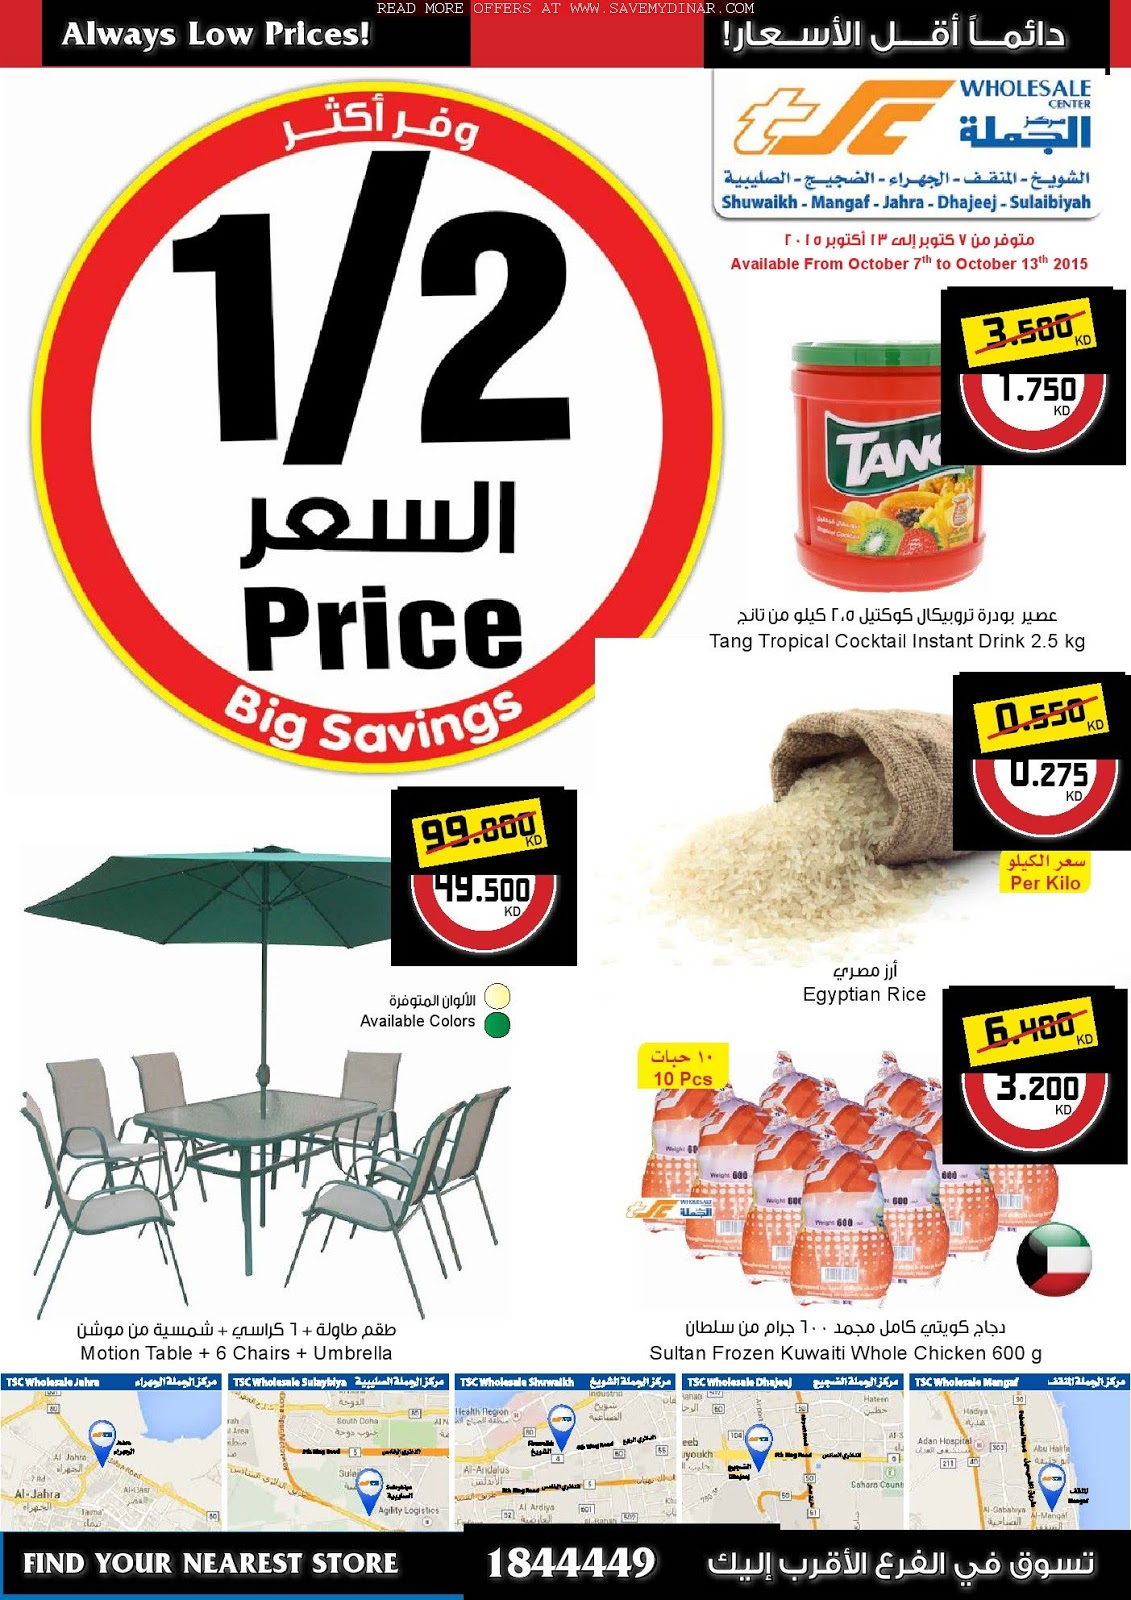 Kuwait Prices, Smart way to Shop: Special Offer. Special offers Valid for a Short Period.